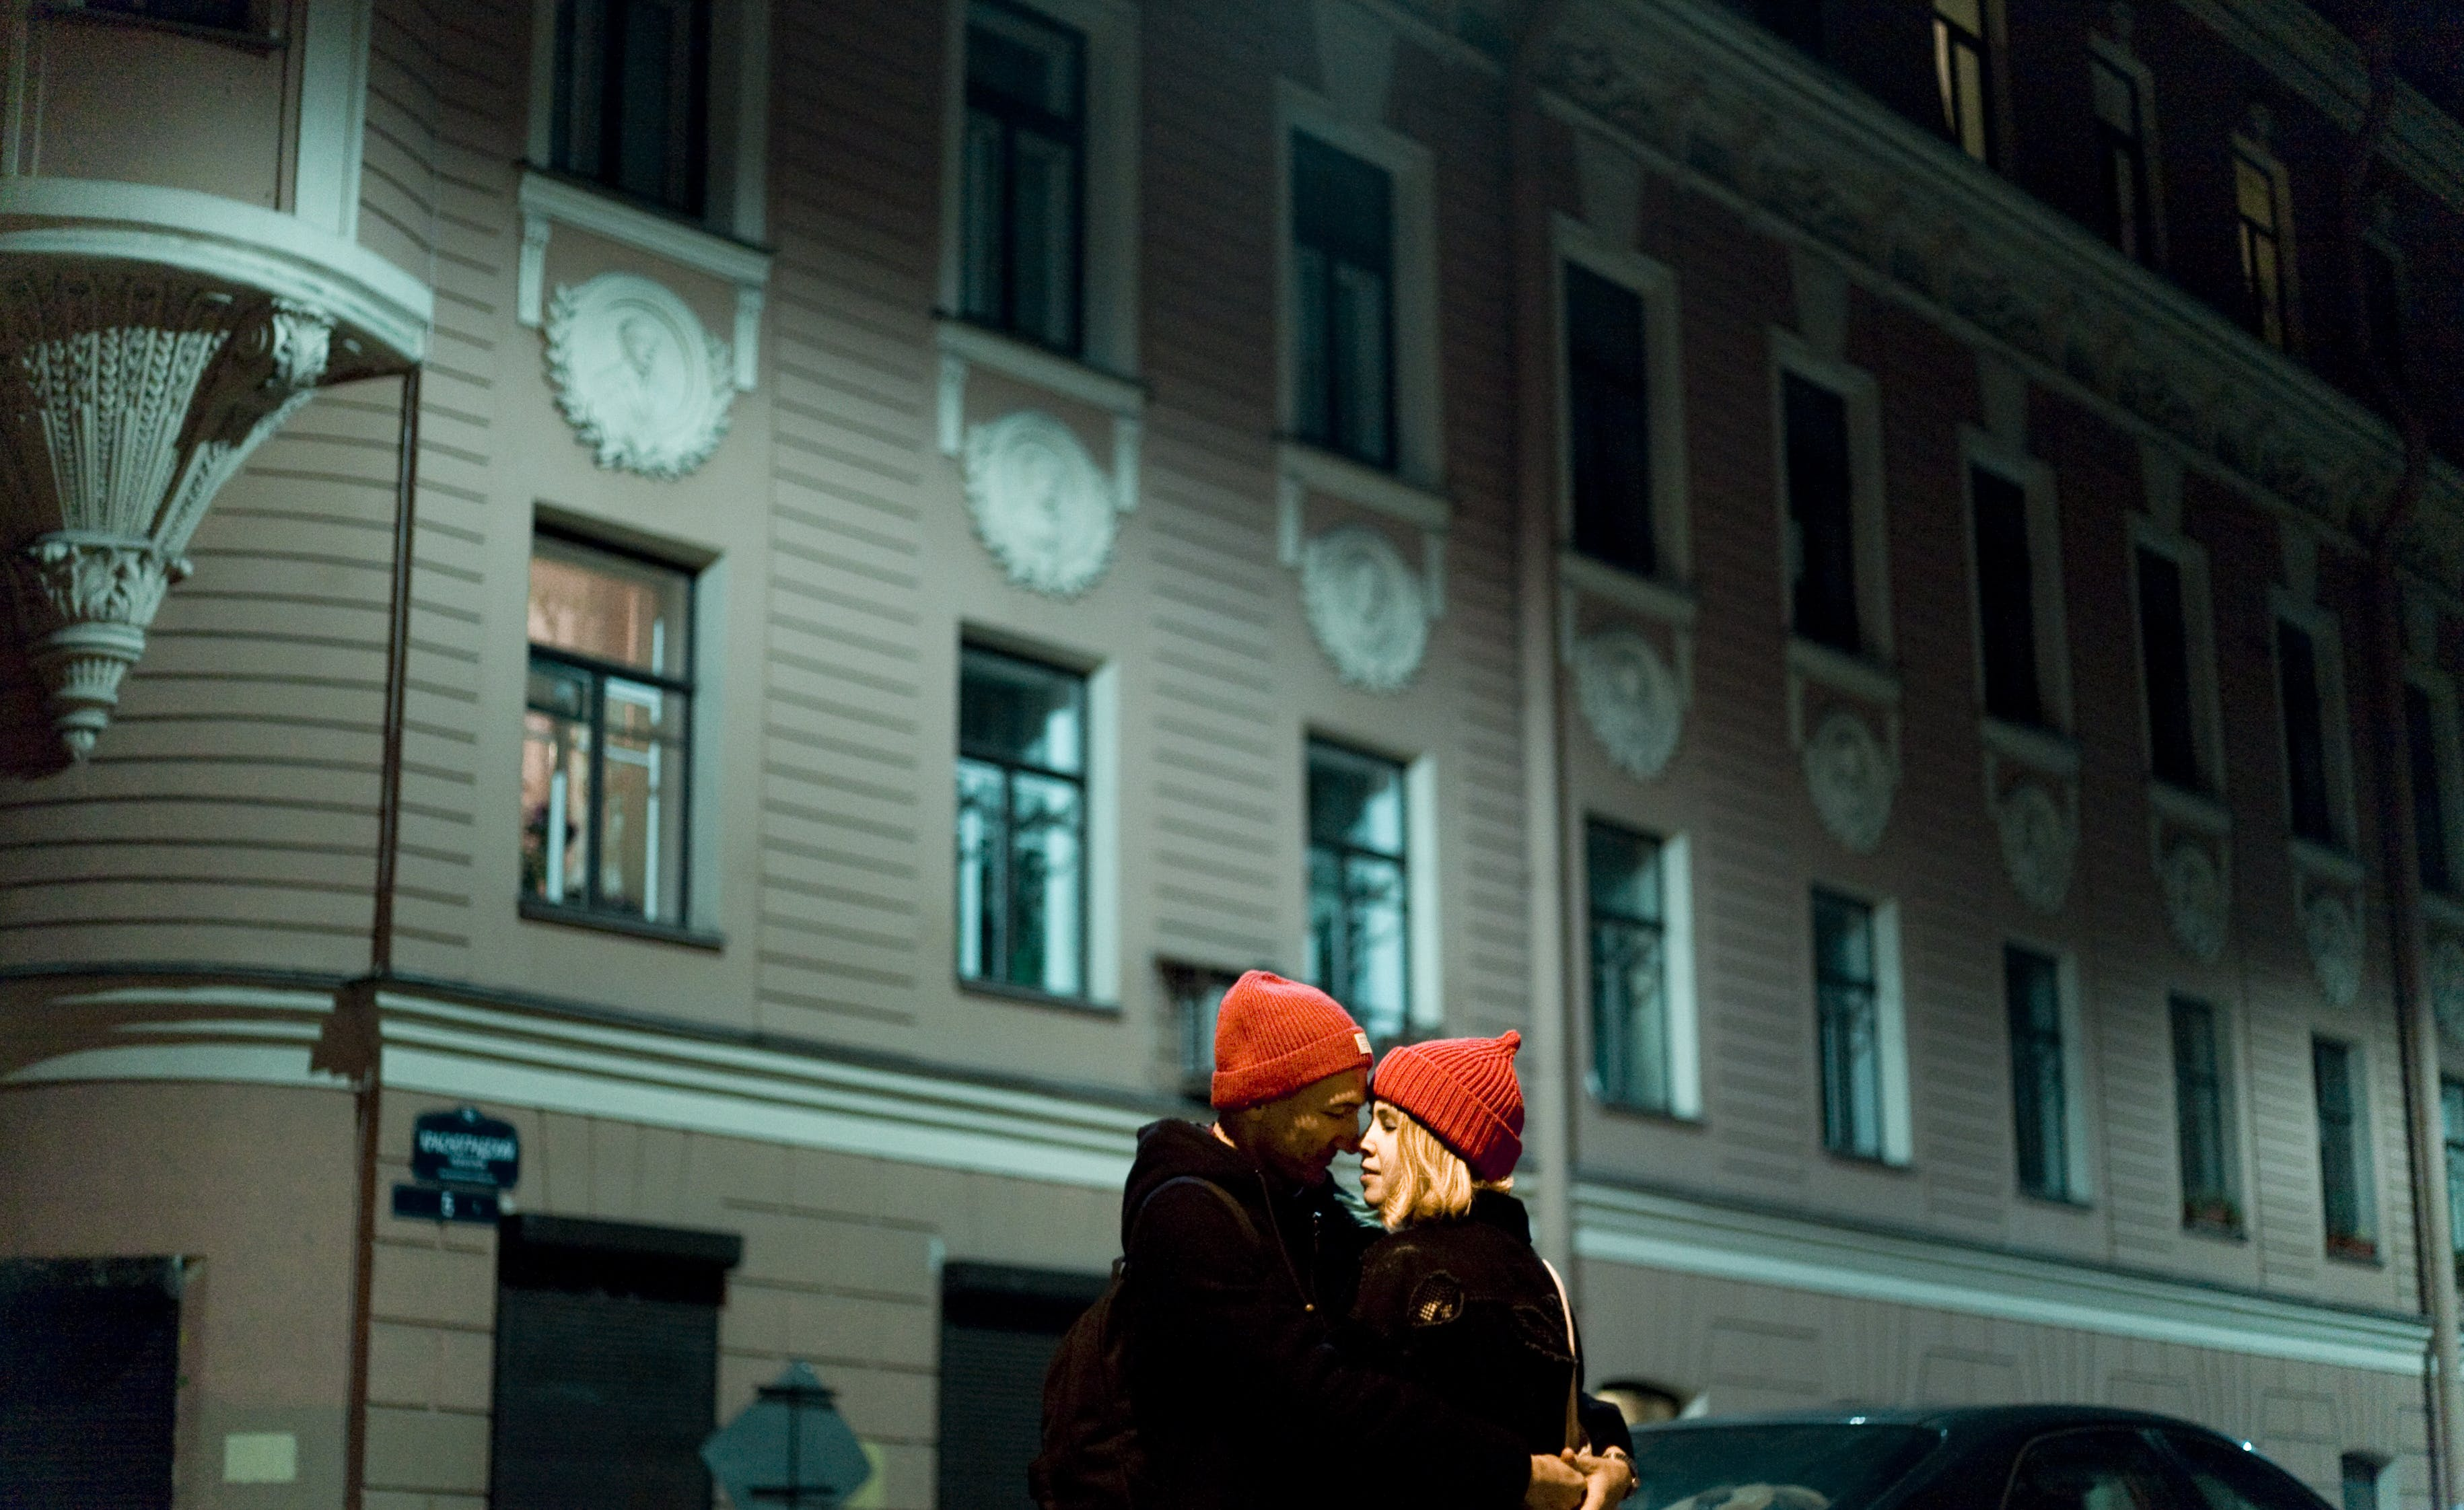 Man and Woman Wearing Red Knit Cap About to Kiss in Front of Gray Concrete Building during Nighttime